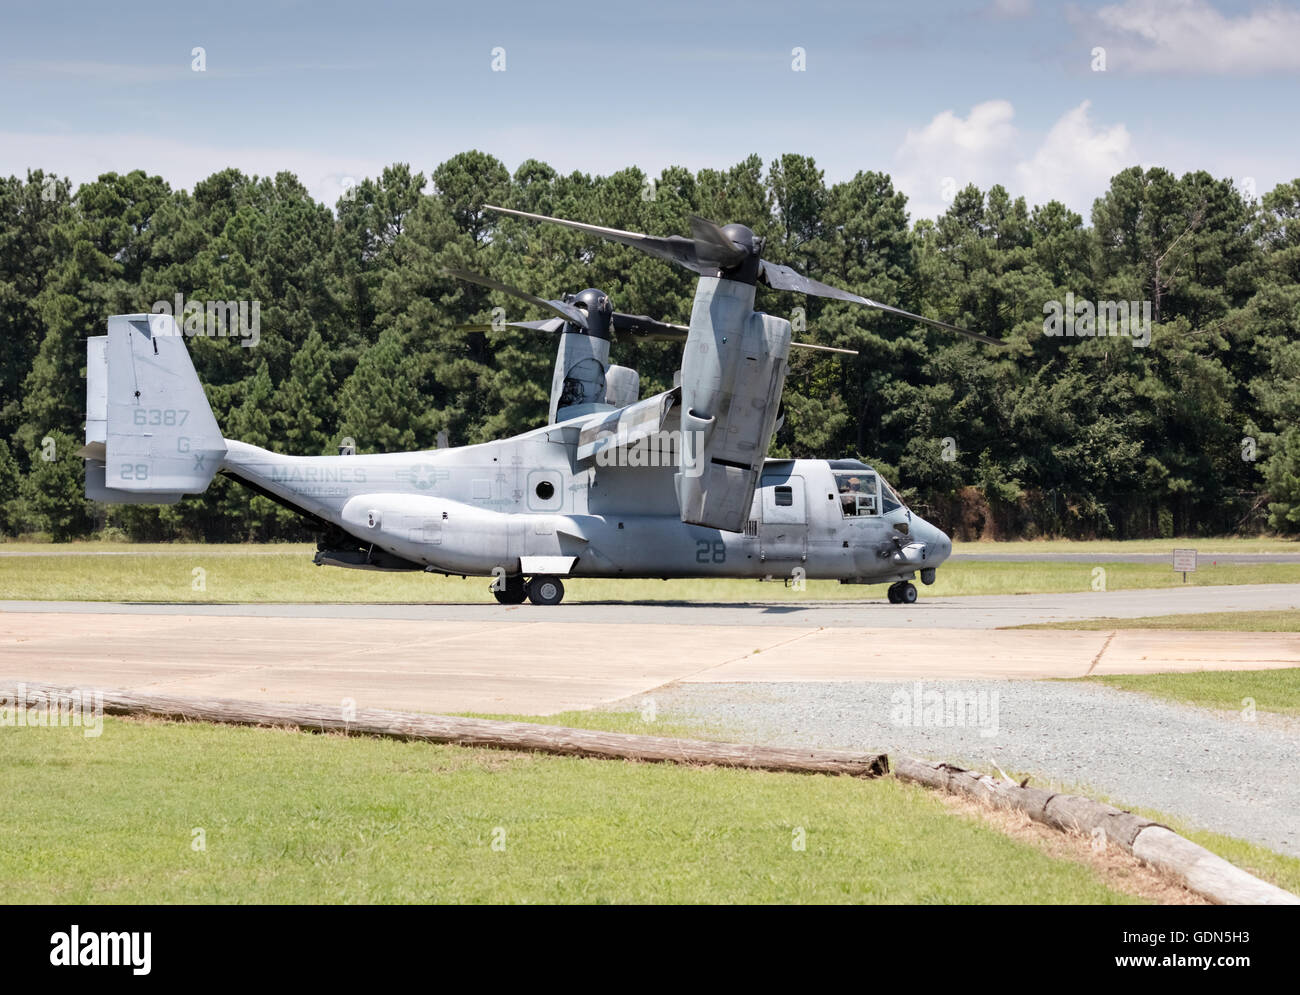 V-22 Osprey V/STOL aircraft taxiing at Horace Williams Airport, Chapel Hill, NC USA - Stock Image